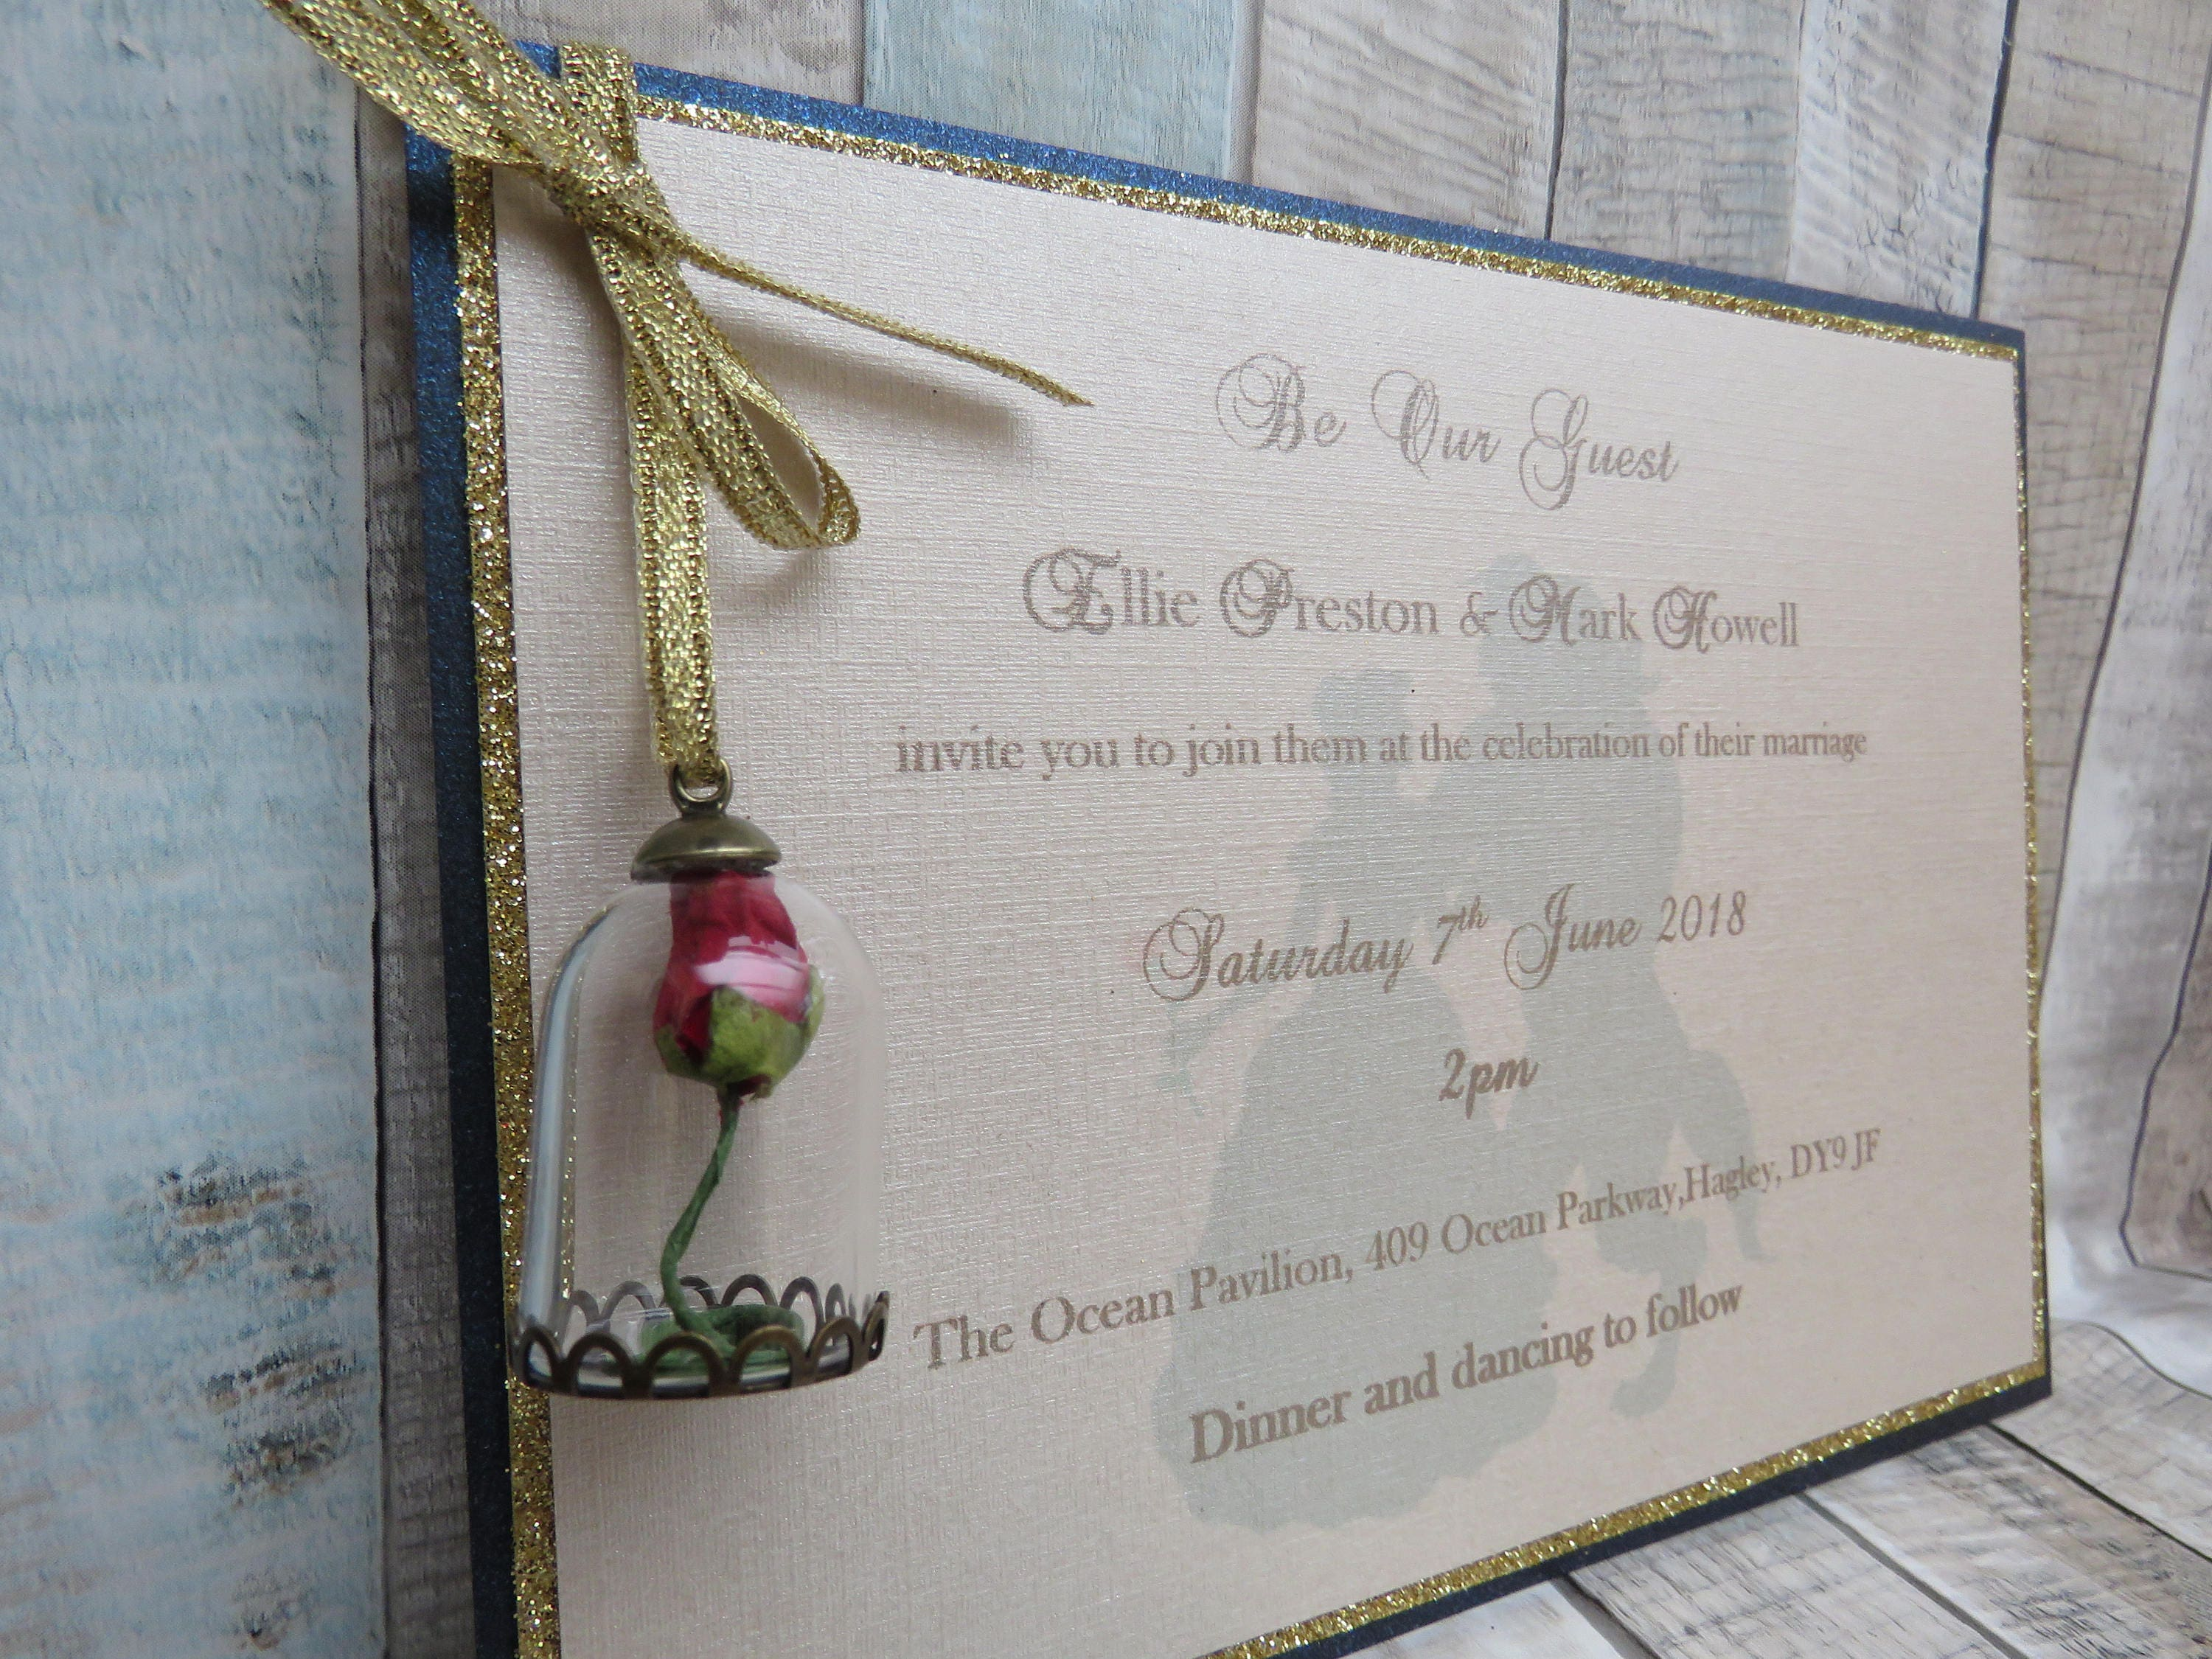 Beauty And The Beast Themed Wedding Invitations: Beauty & The Beast Themed Luxury Wedding Invitation With